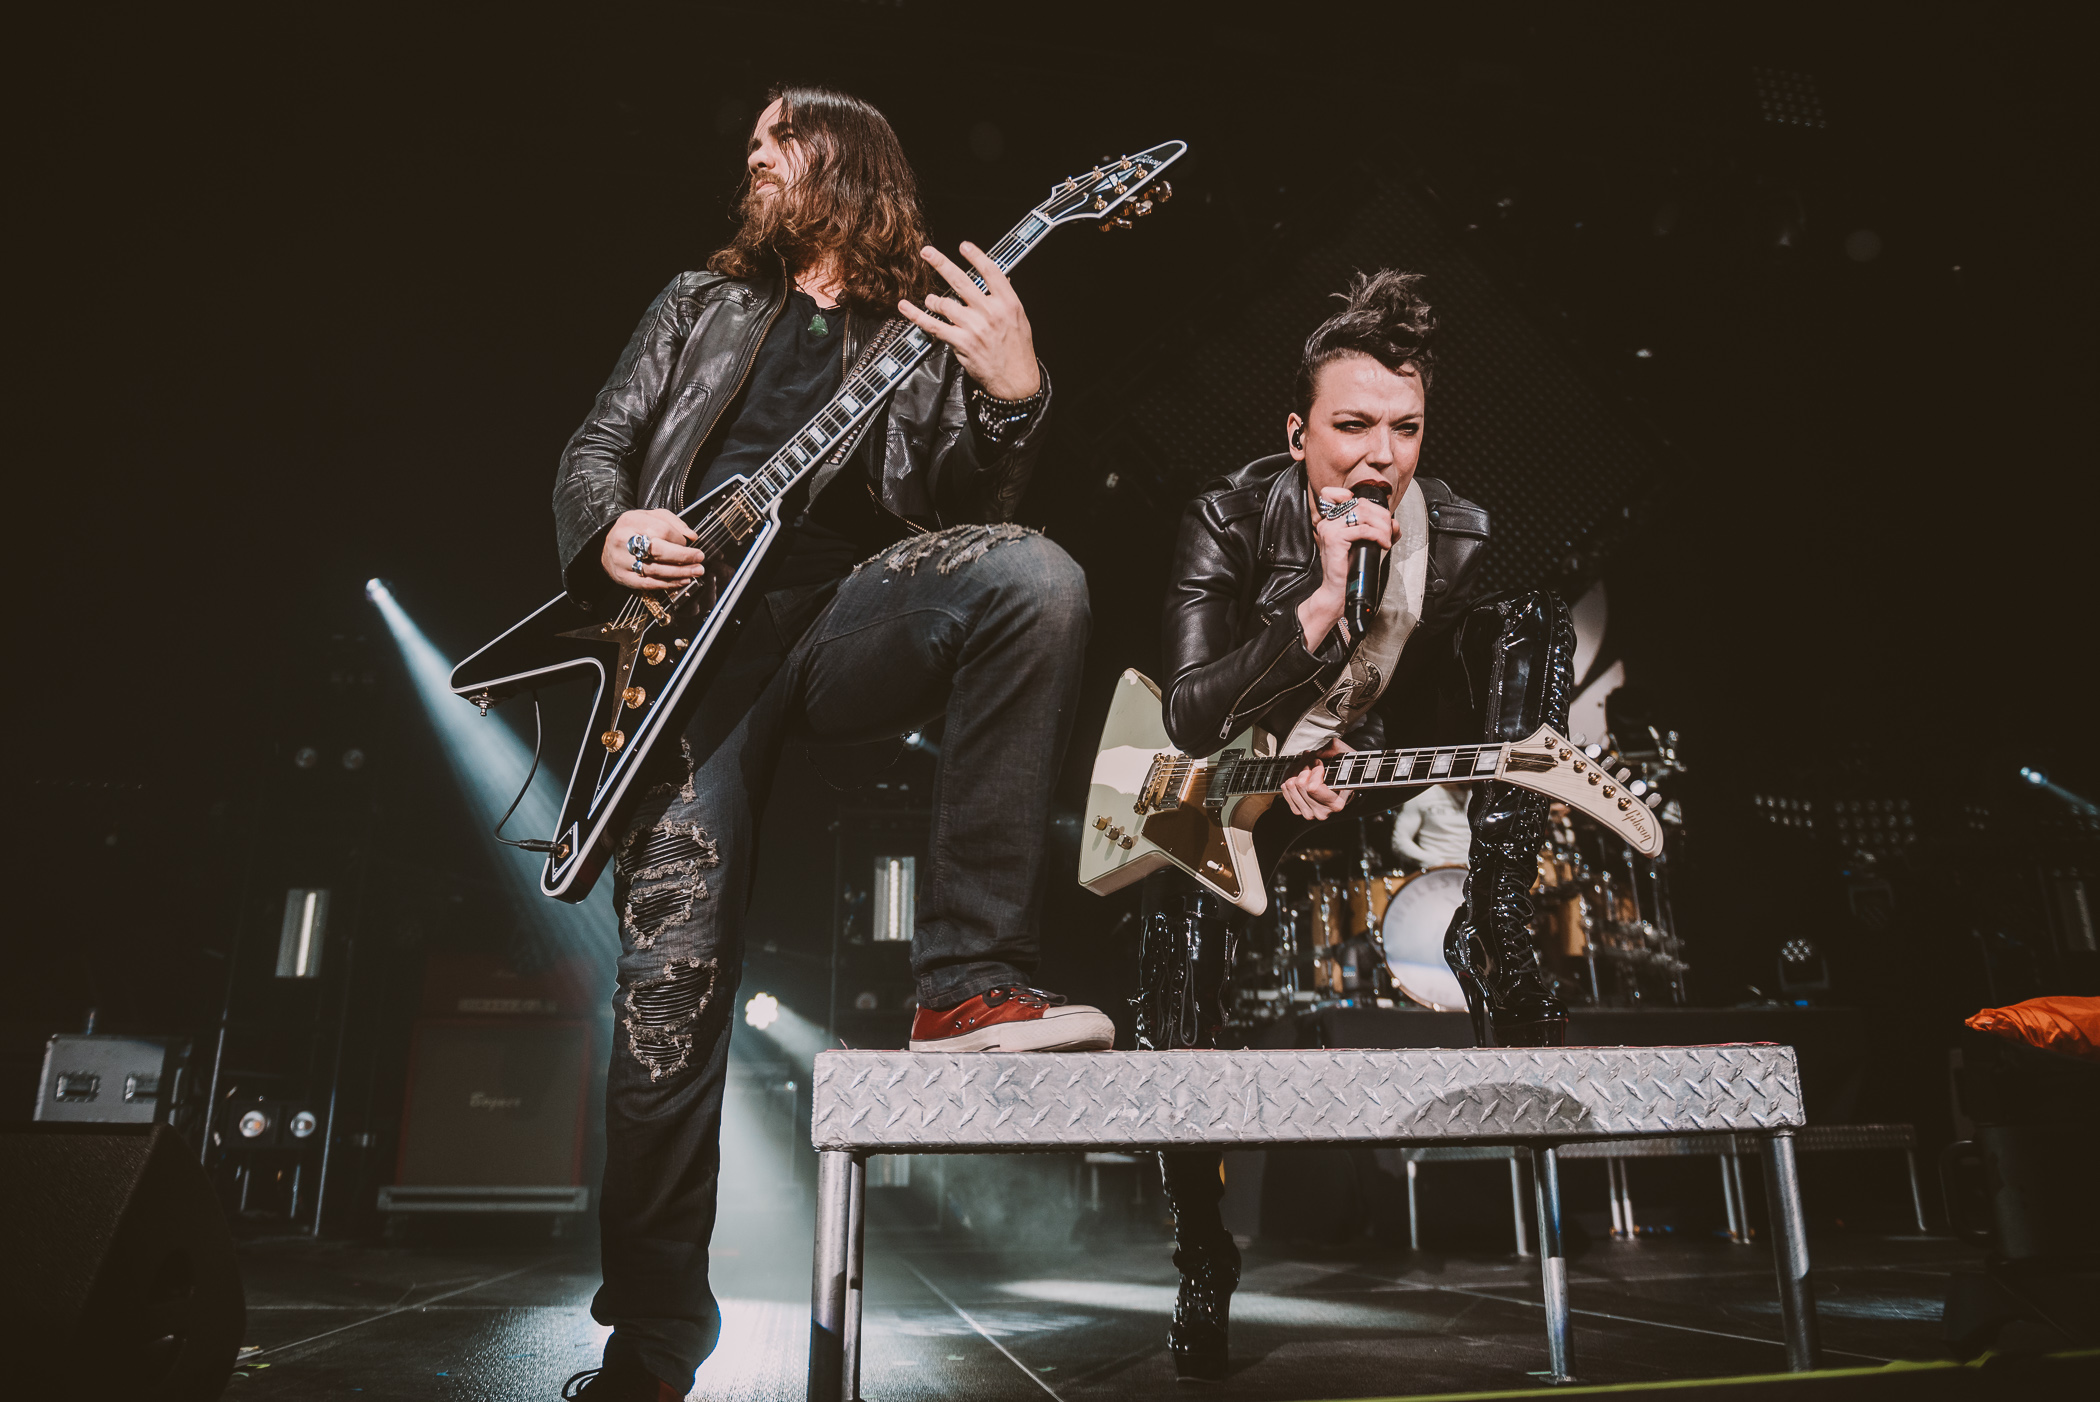 2_Halestorm-Abbotsford_Centre-Timothy_Nguyen-20180127 (4 of 15).jpg